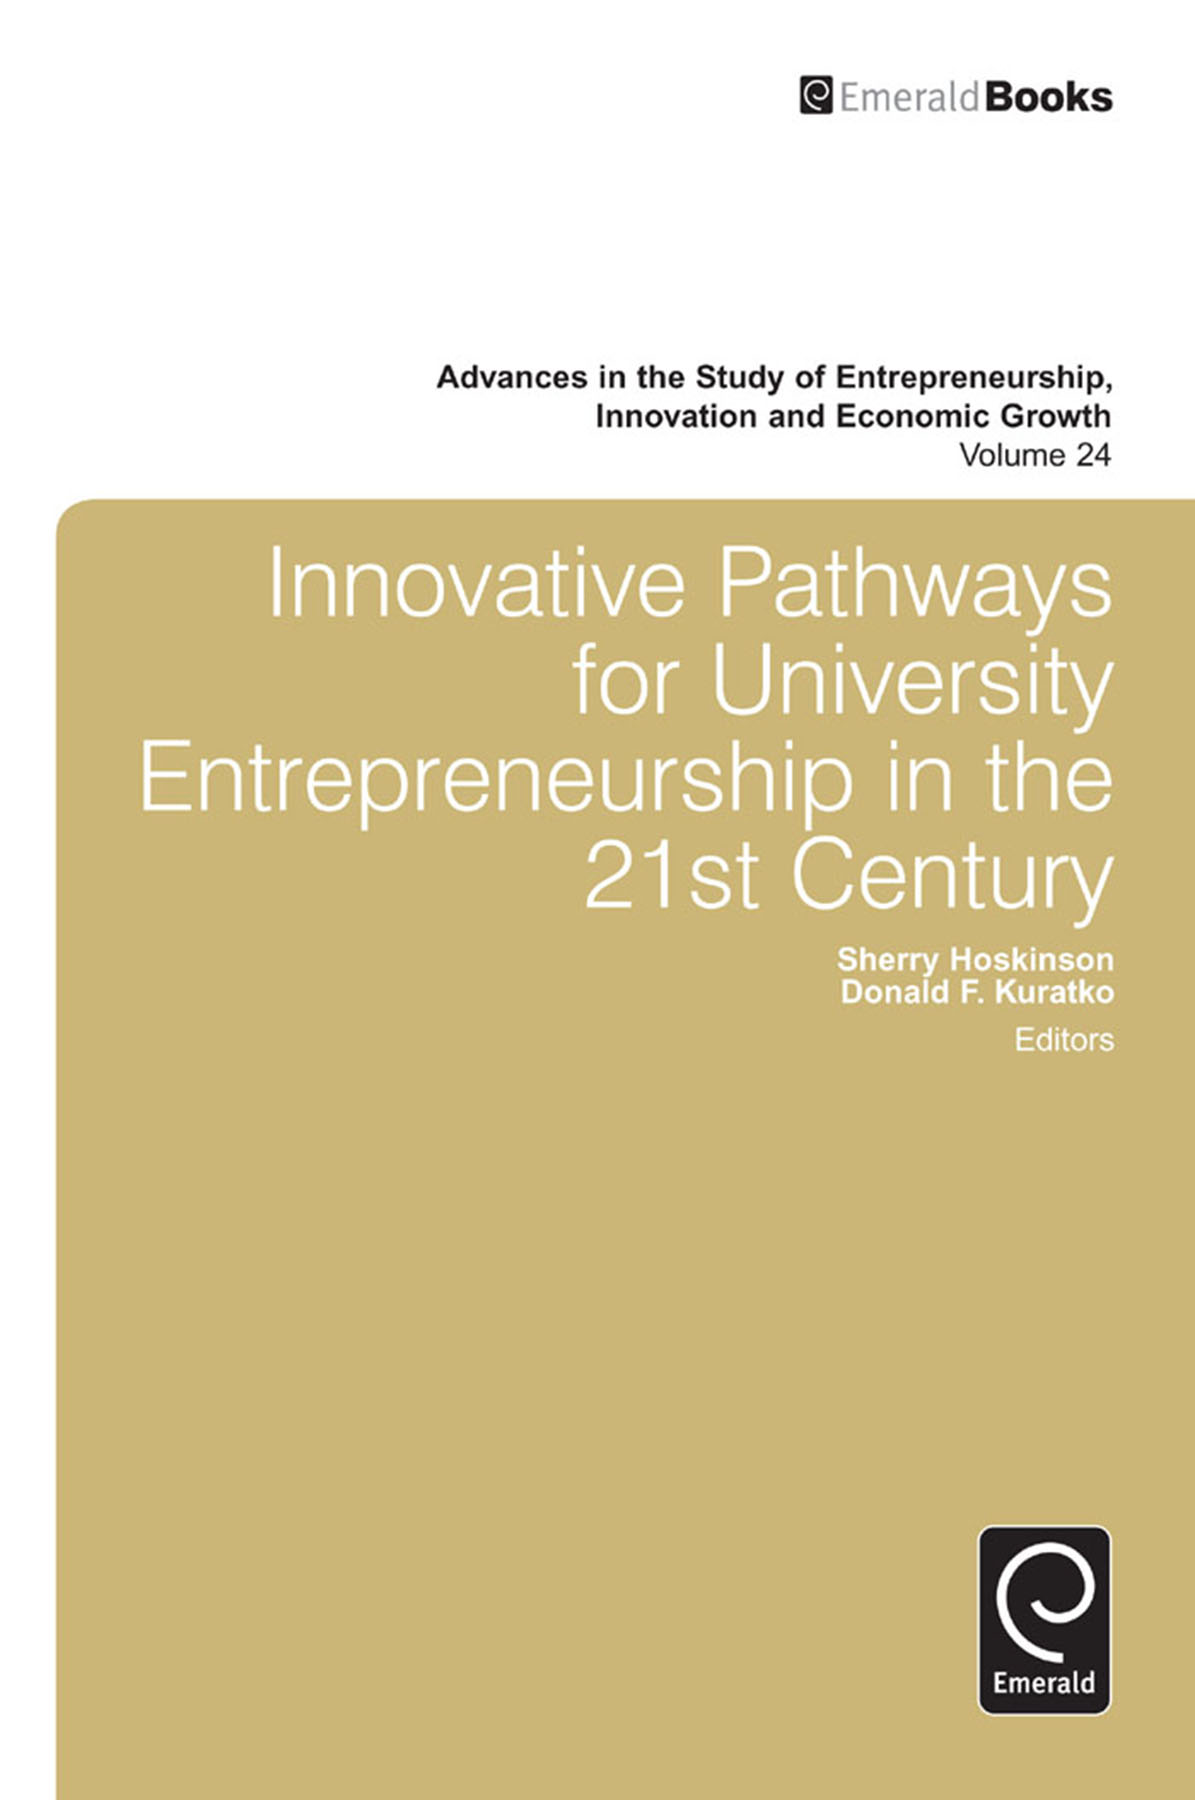 Download Ebook Innovative Pathways for University Entrepreneurship in the 21st Century by Donald F. Kuratko Pdf